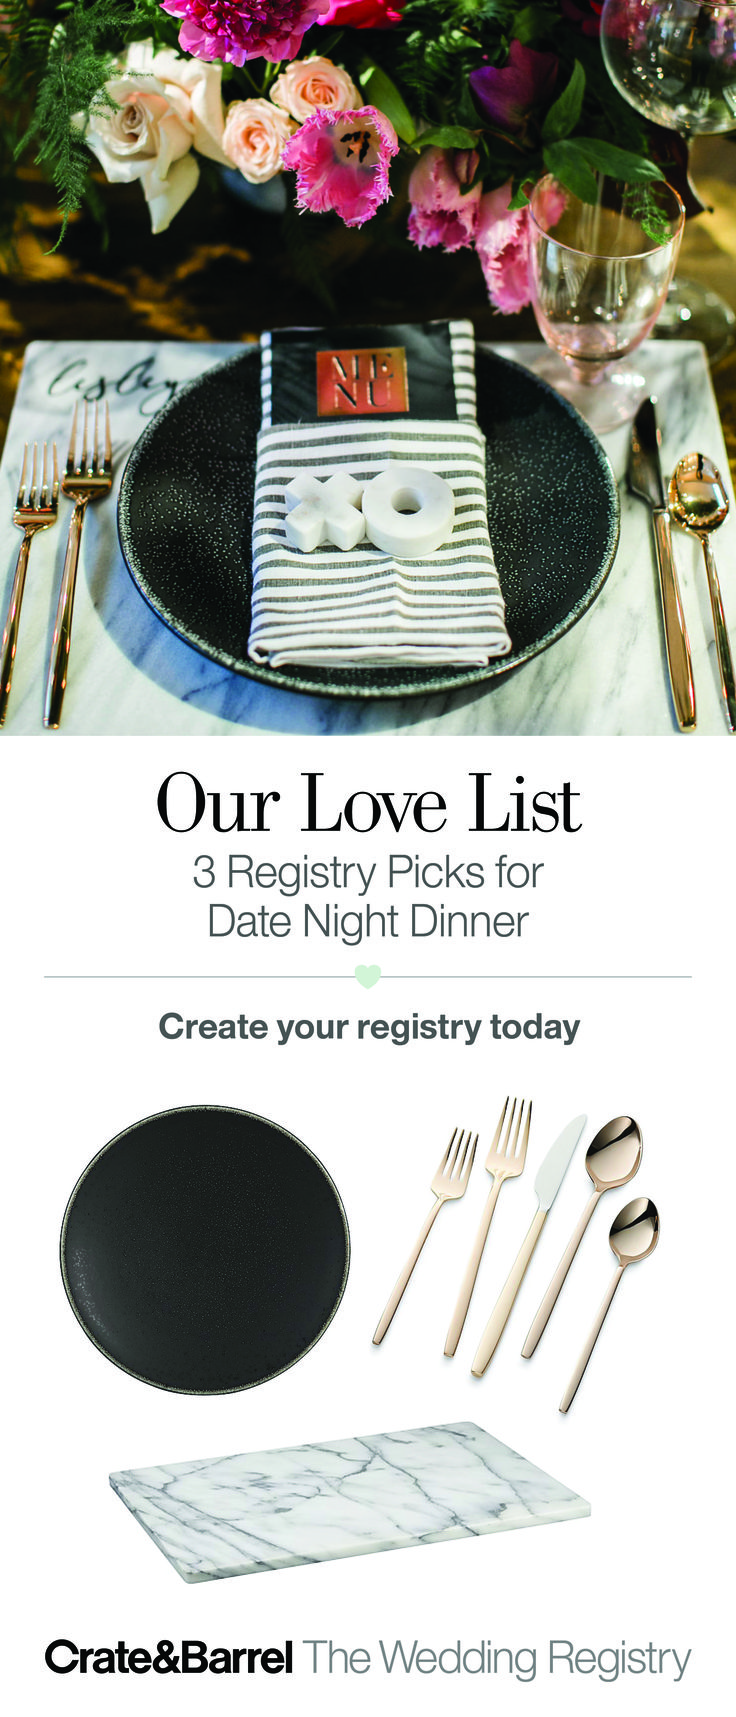 Why go out when the perfect night is in? Our friends at 100 Layer Cake set a luxe table for two with hot copper flatware, cool white marble and French dinnerware crafted by hand. Isn't it romantic? Create your registry today and don't forget date night at home.